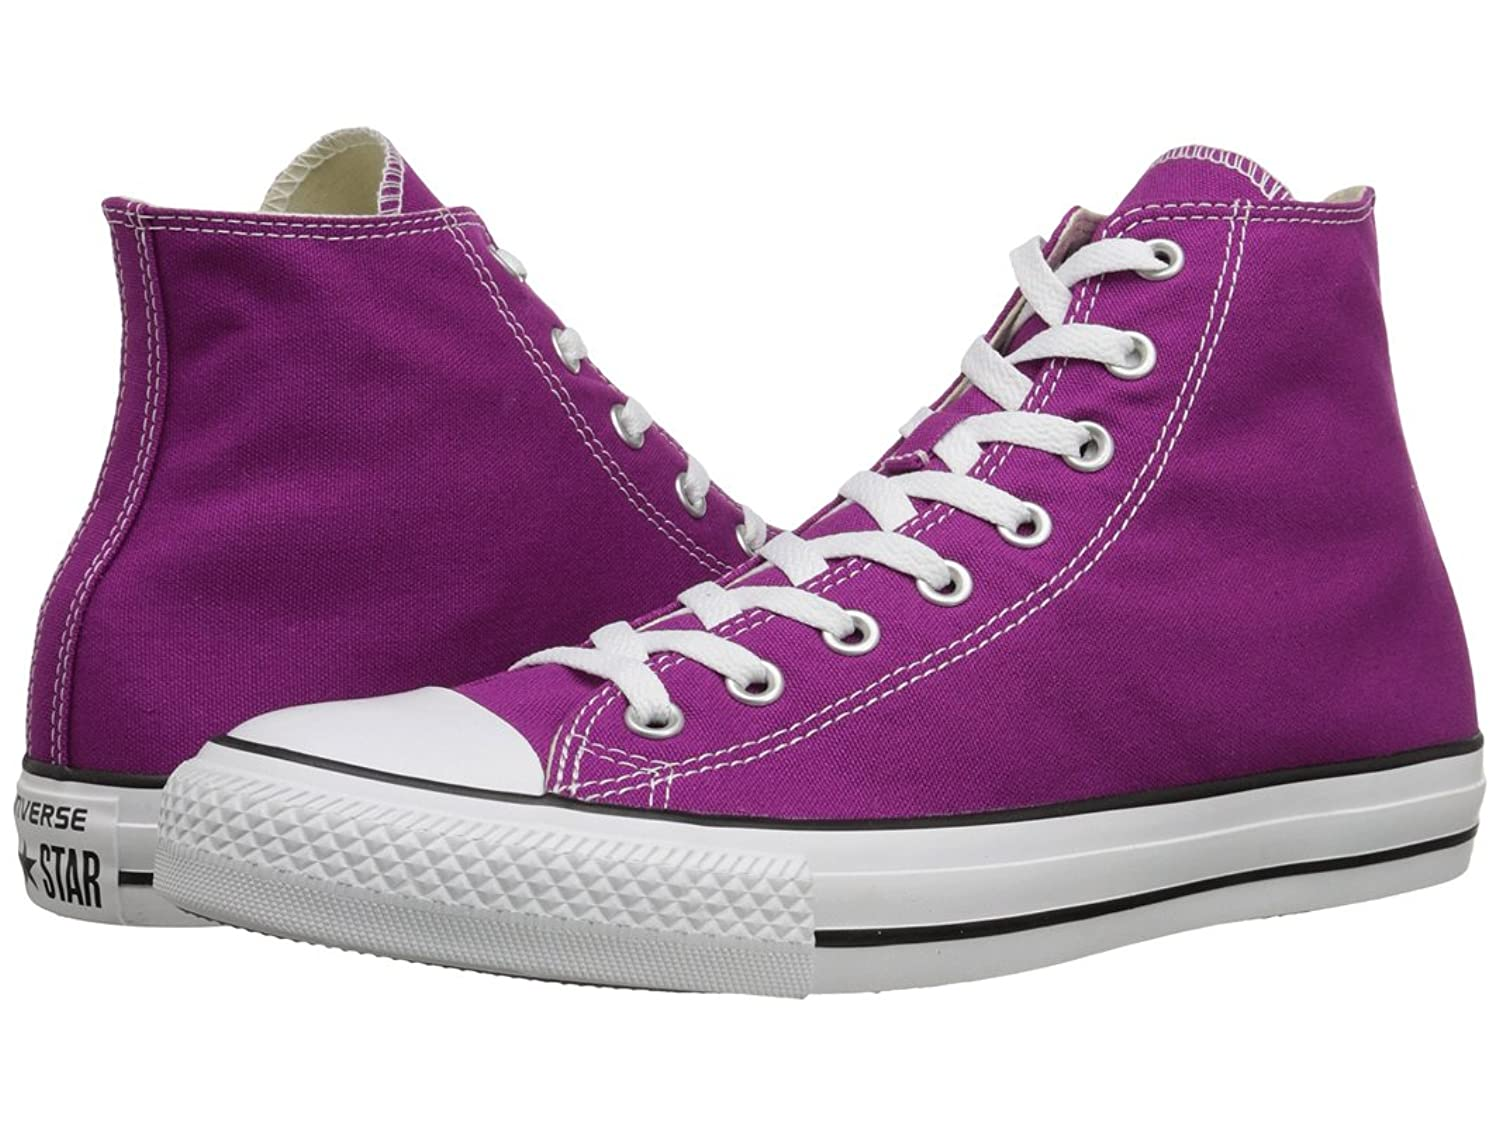 Converse Hauts Pour Femmes Rose 7.5 iOka2WsImy